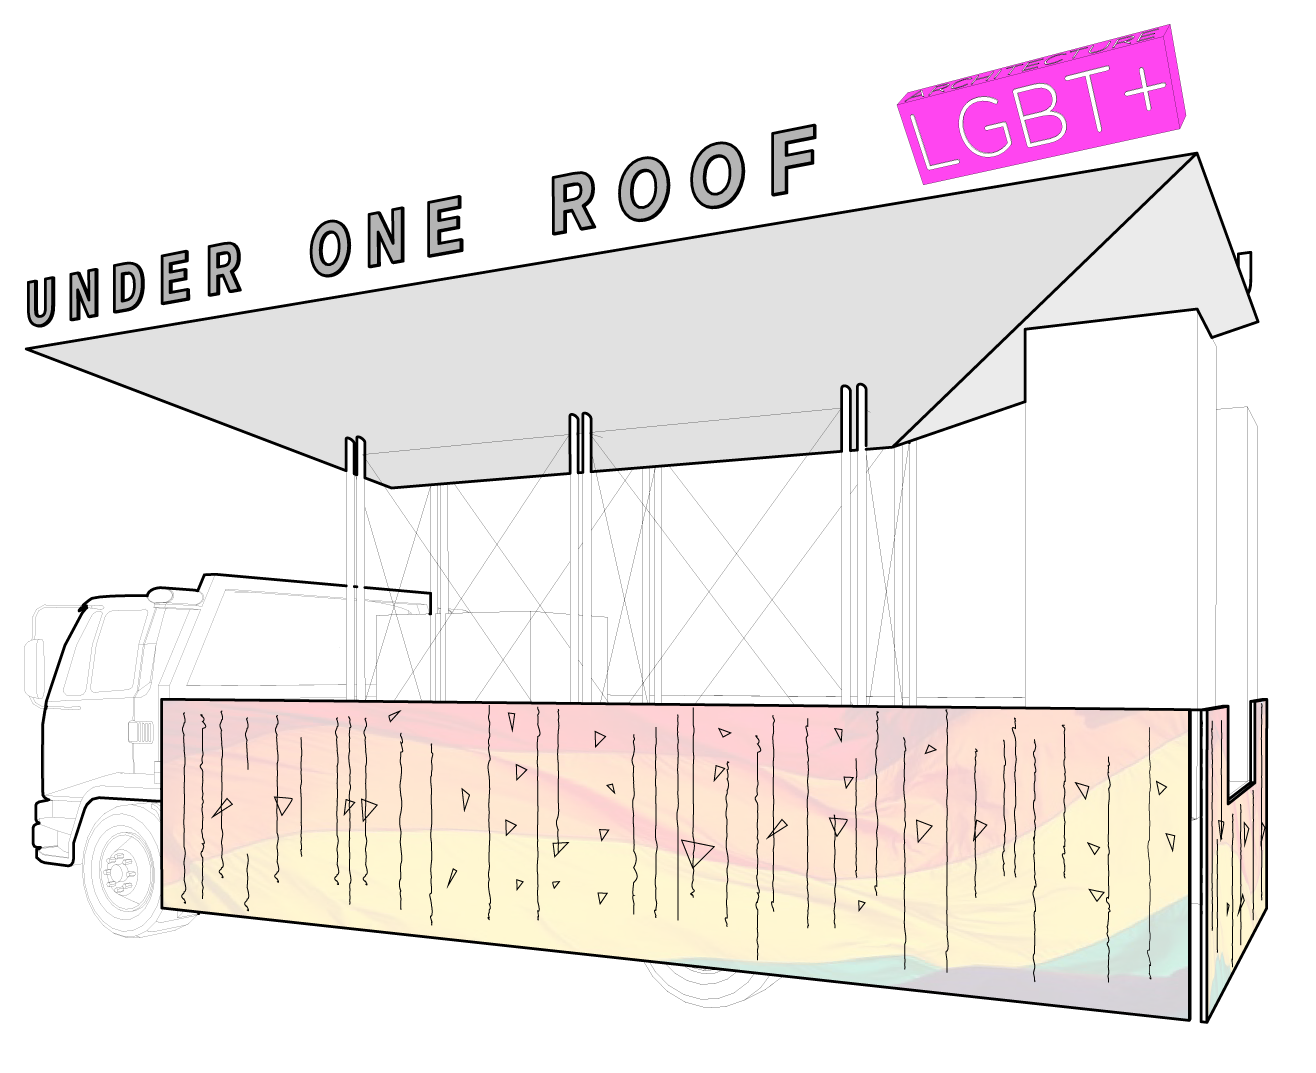 Under One Roof 03.png